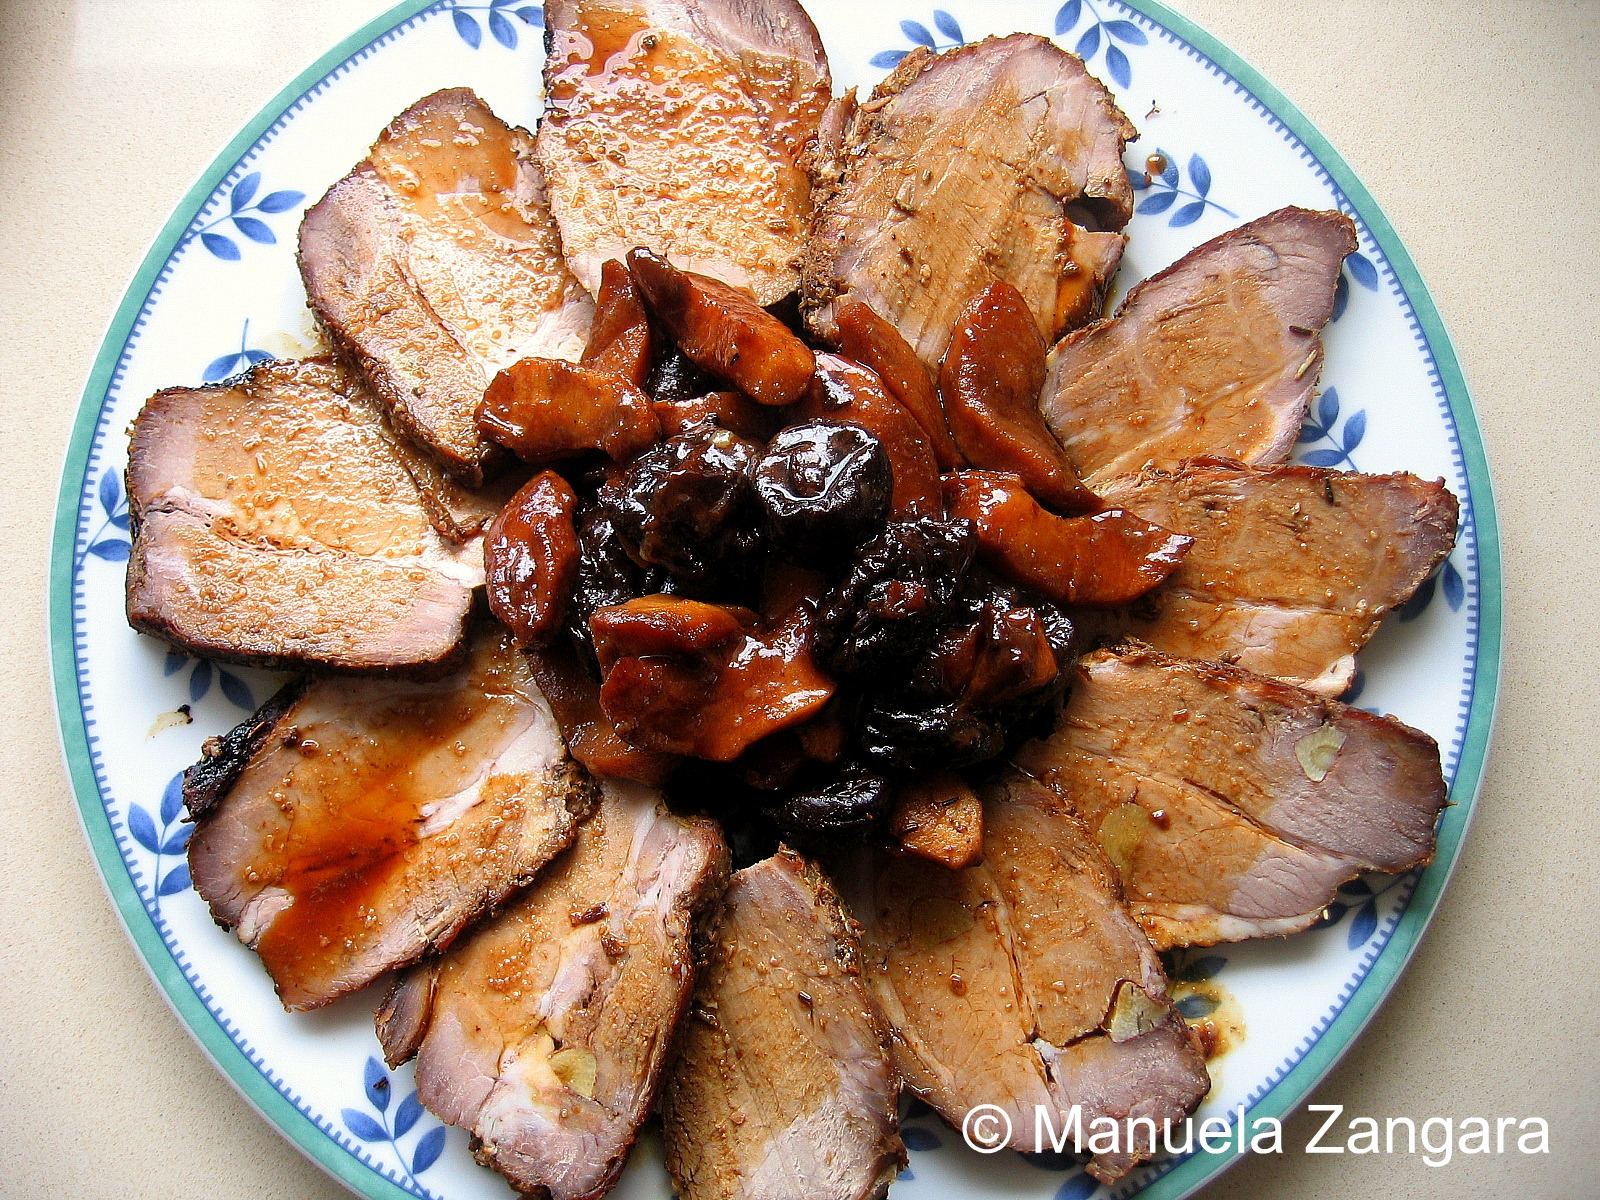 Pork Fillet With Apple And Prunes